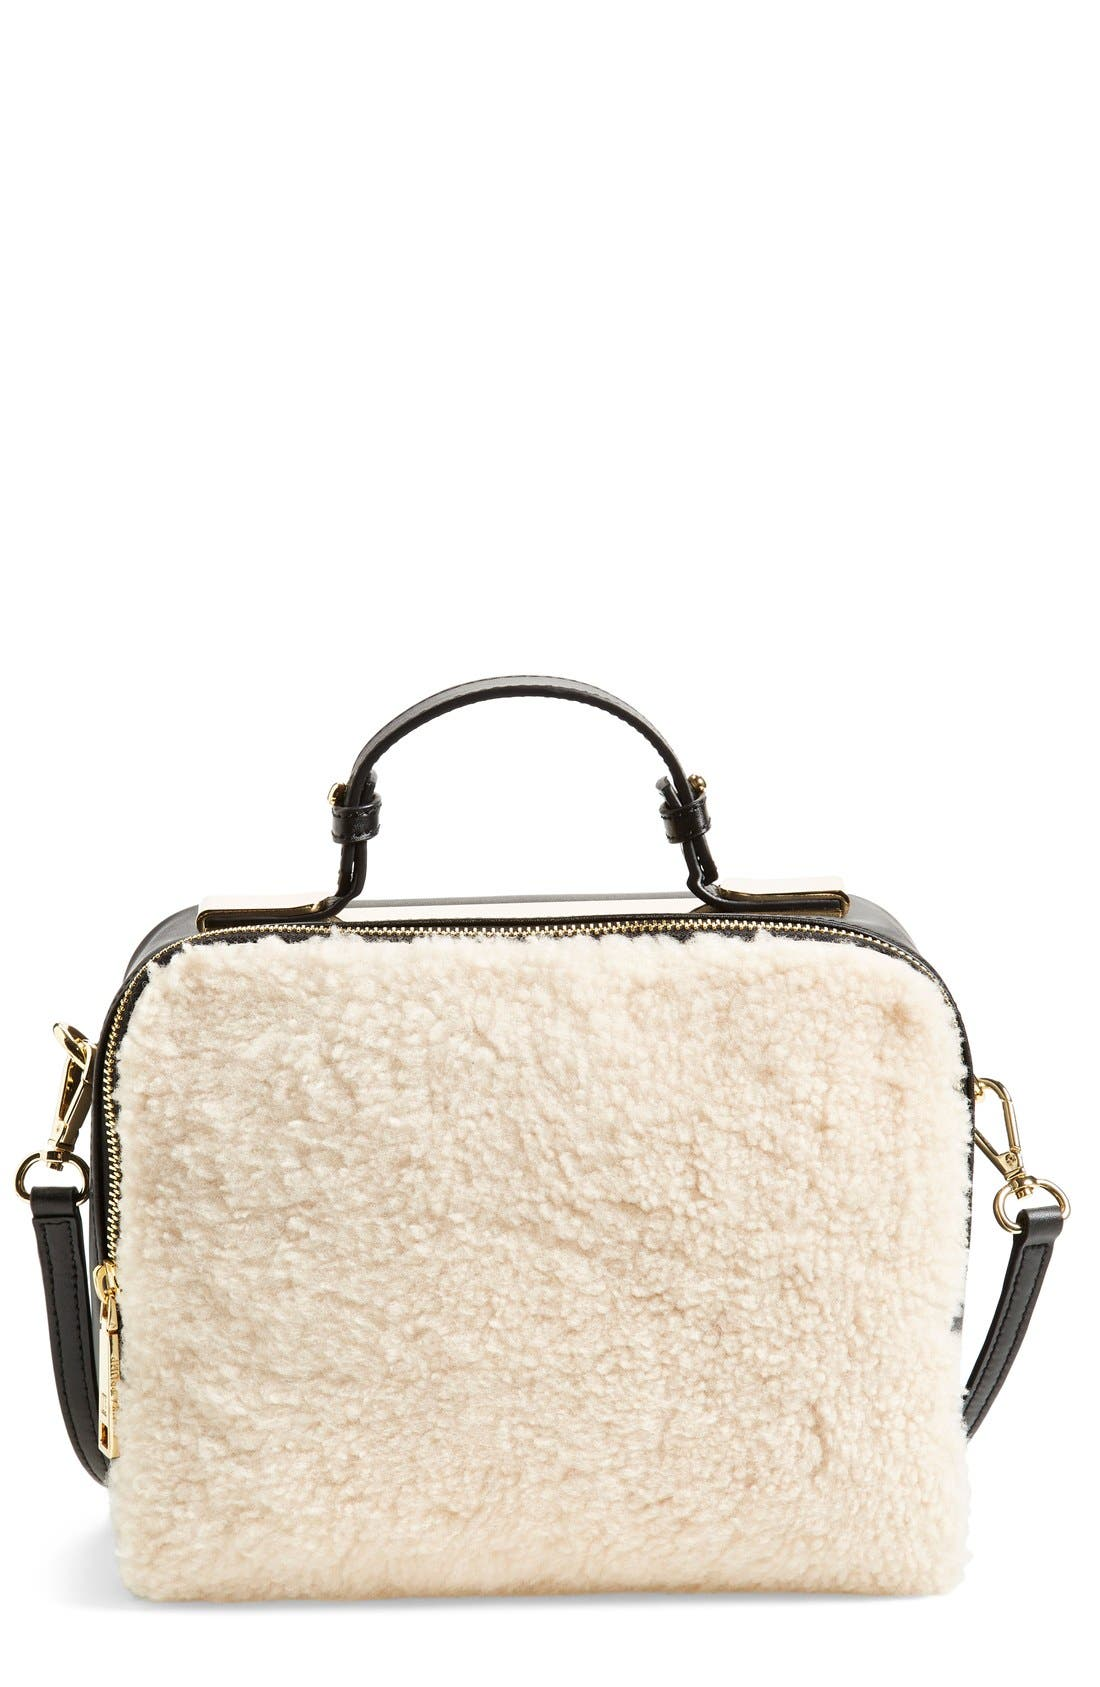 Alternate Image 1 Selected - Ivanka Trump 'Bedminster' Crossbody Satchel